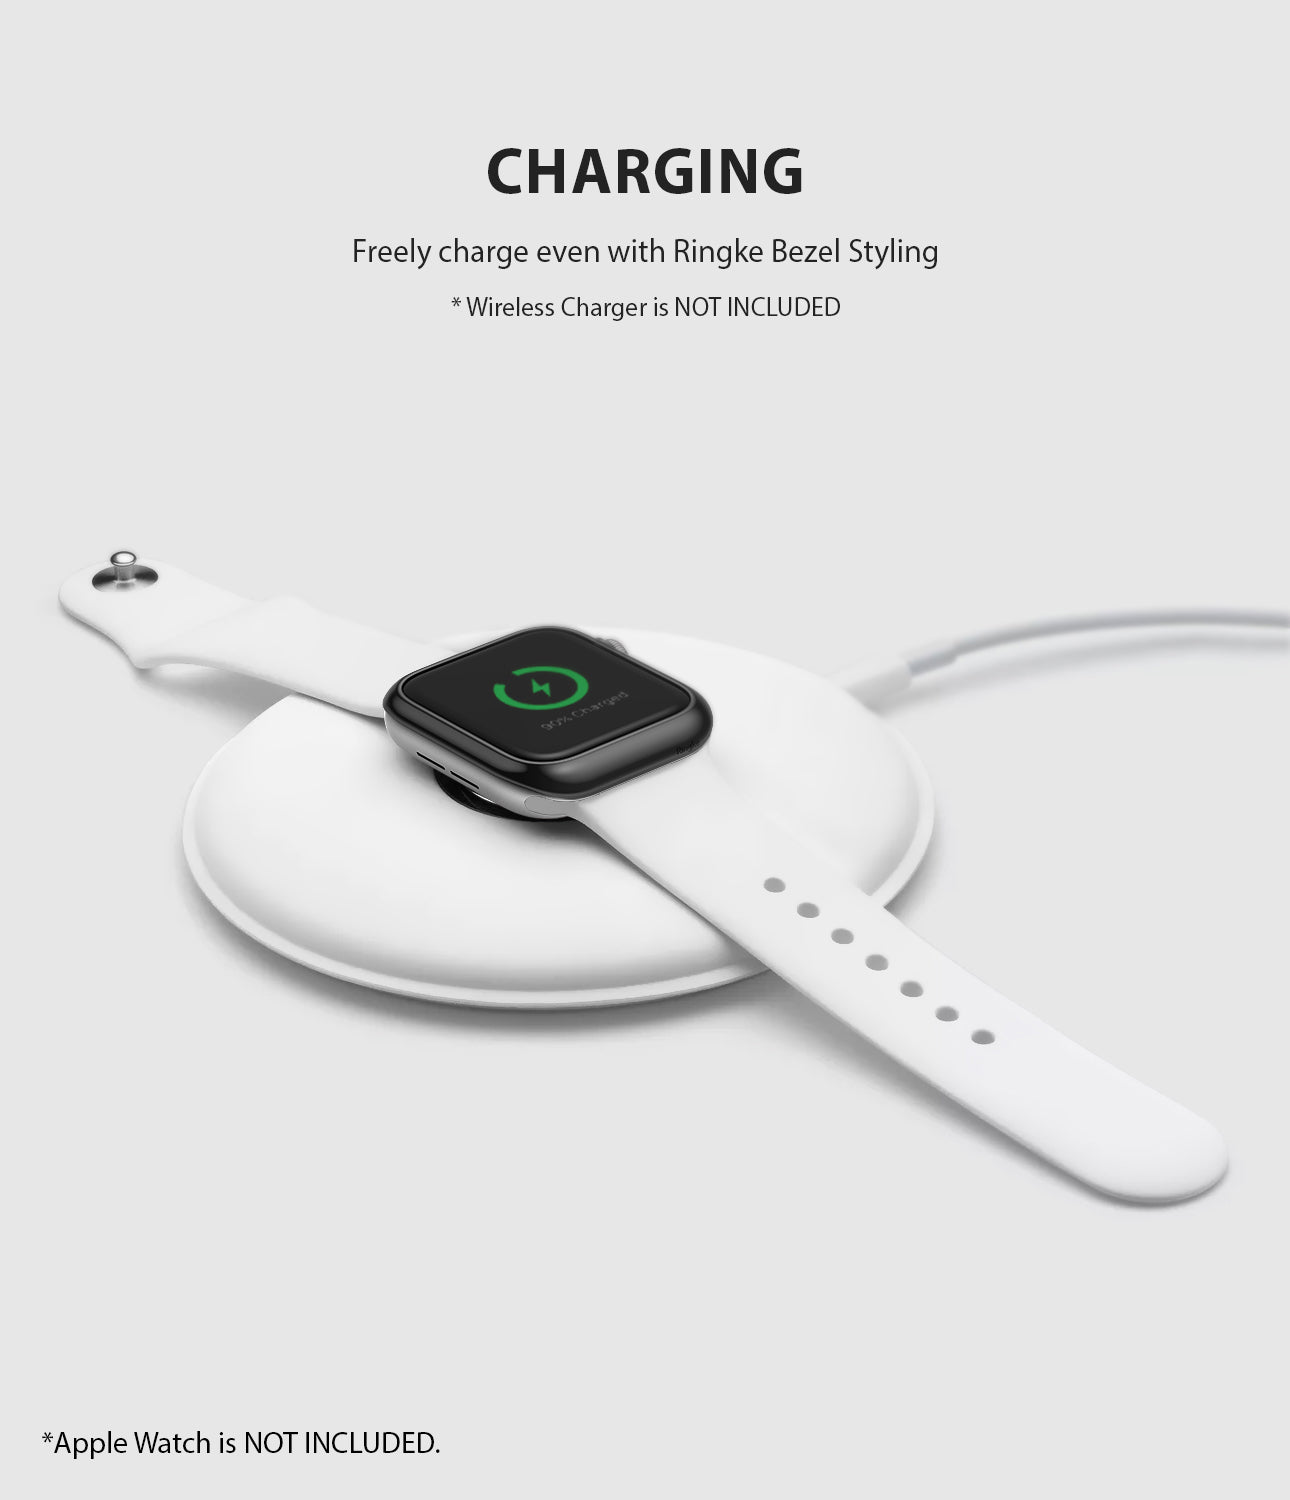 apple watch 3 2 1 38mm case ringke bezel styling stainless steel frame cover 38-03 wireless charging